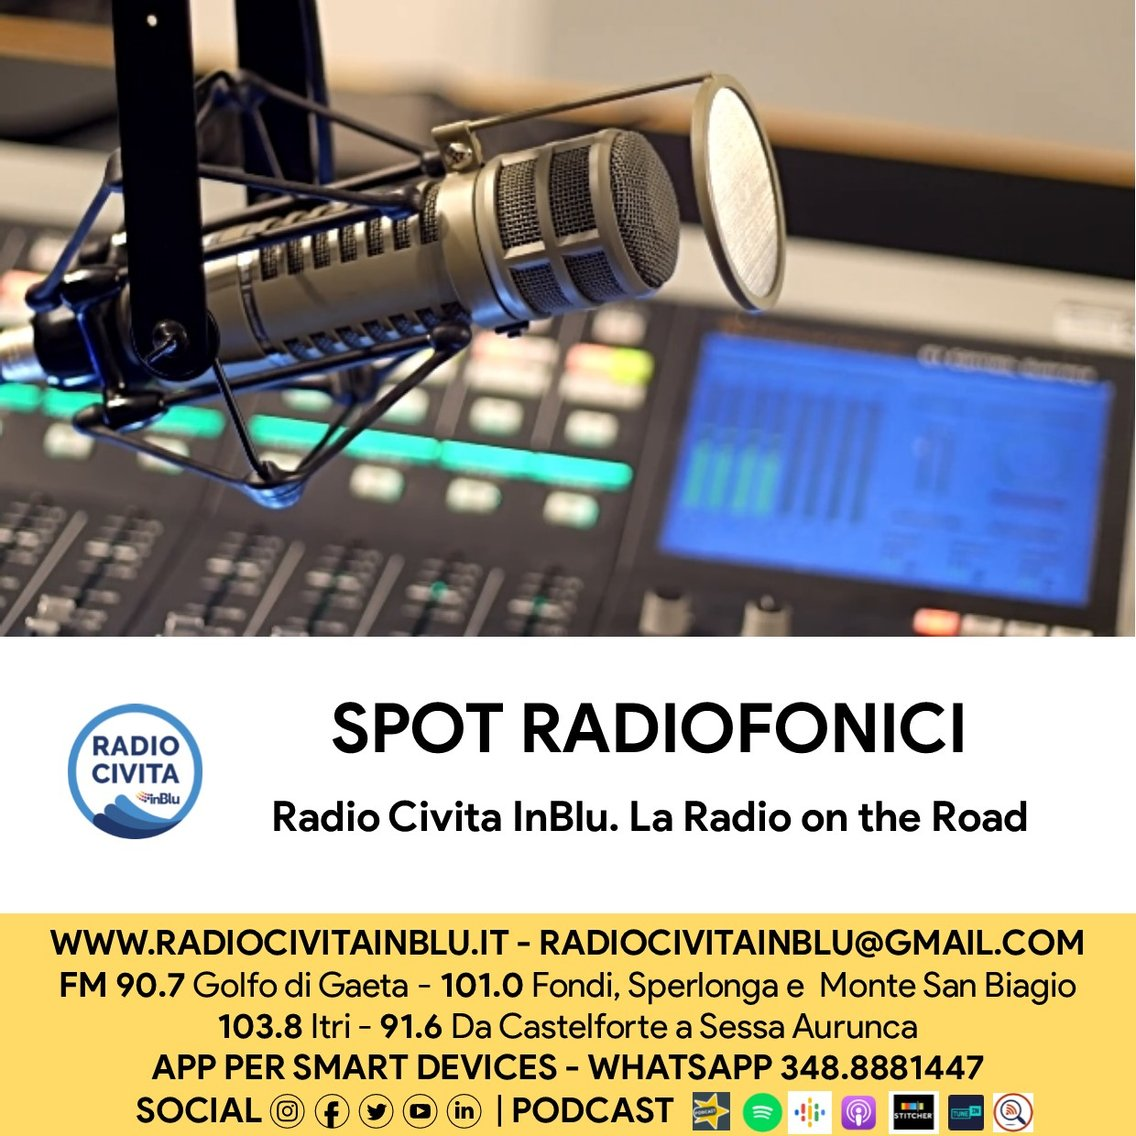 Spot radiofonici - Cover Image